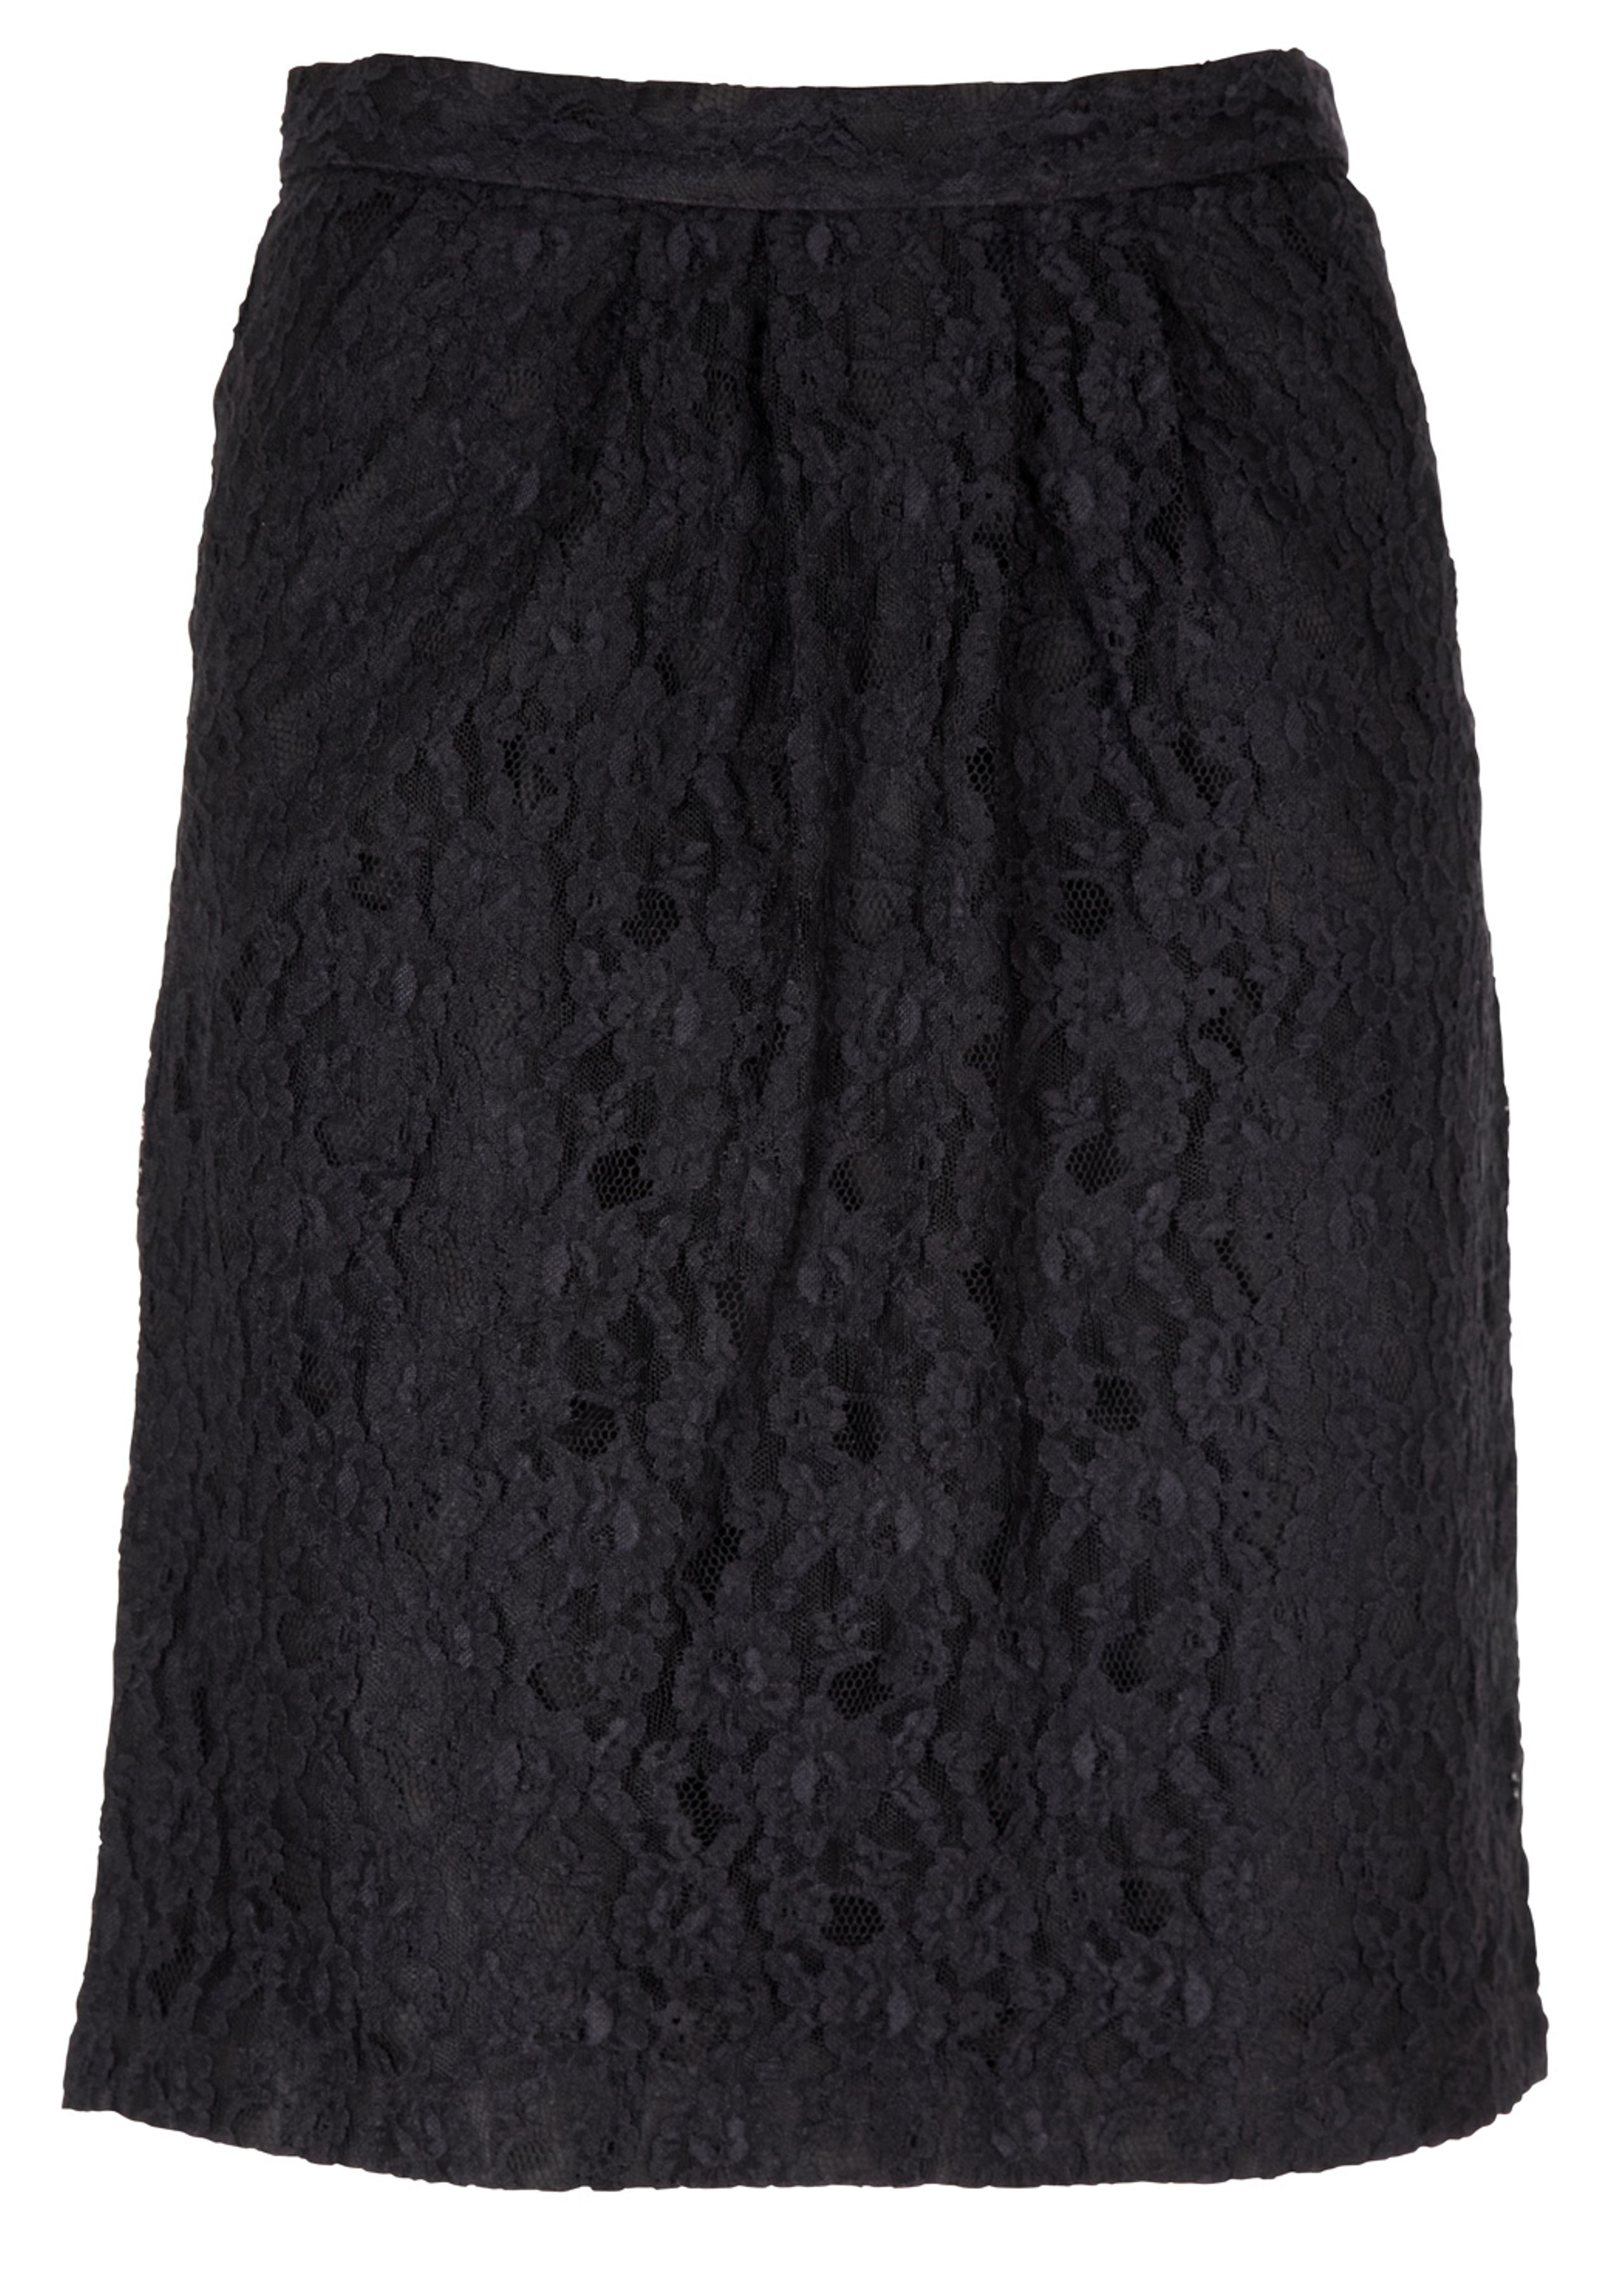 Image of   Lace Skirt